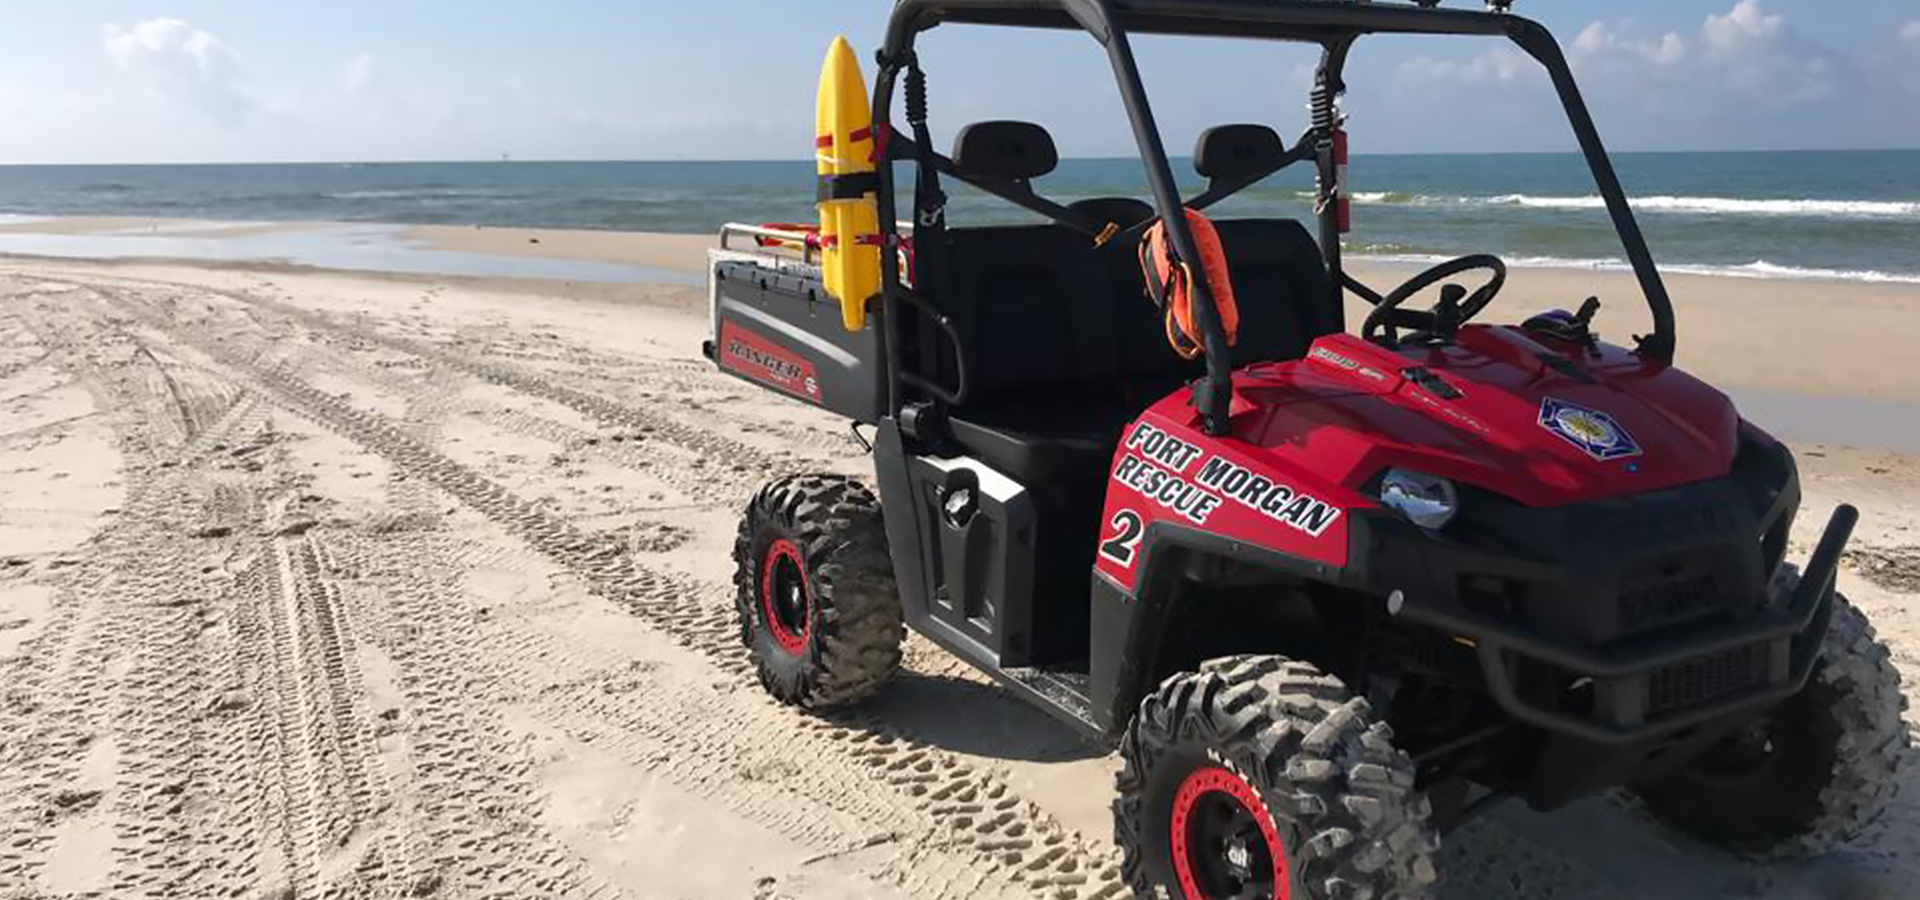 Fort Morgan Fire ATV